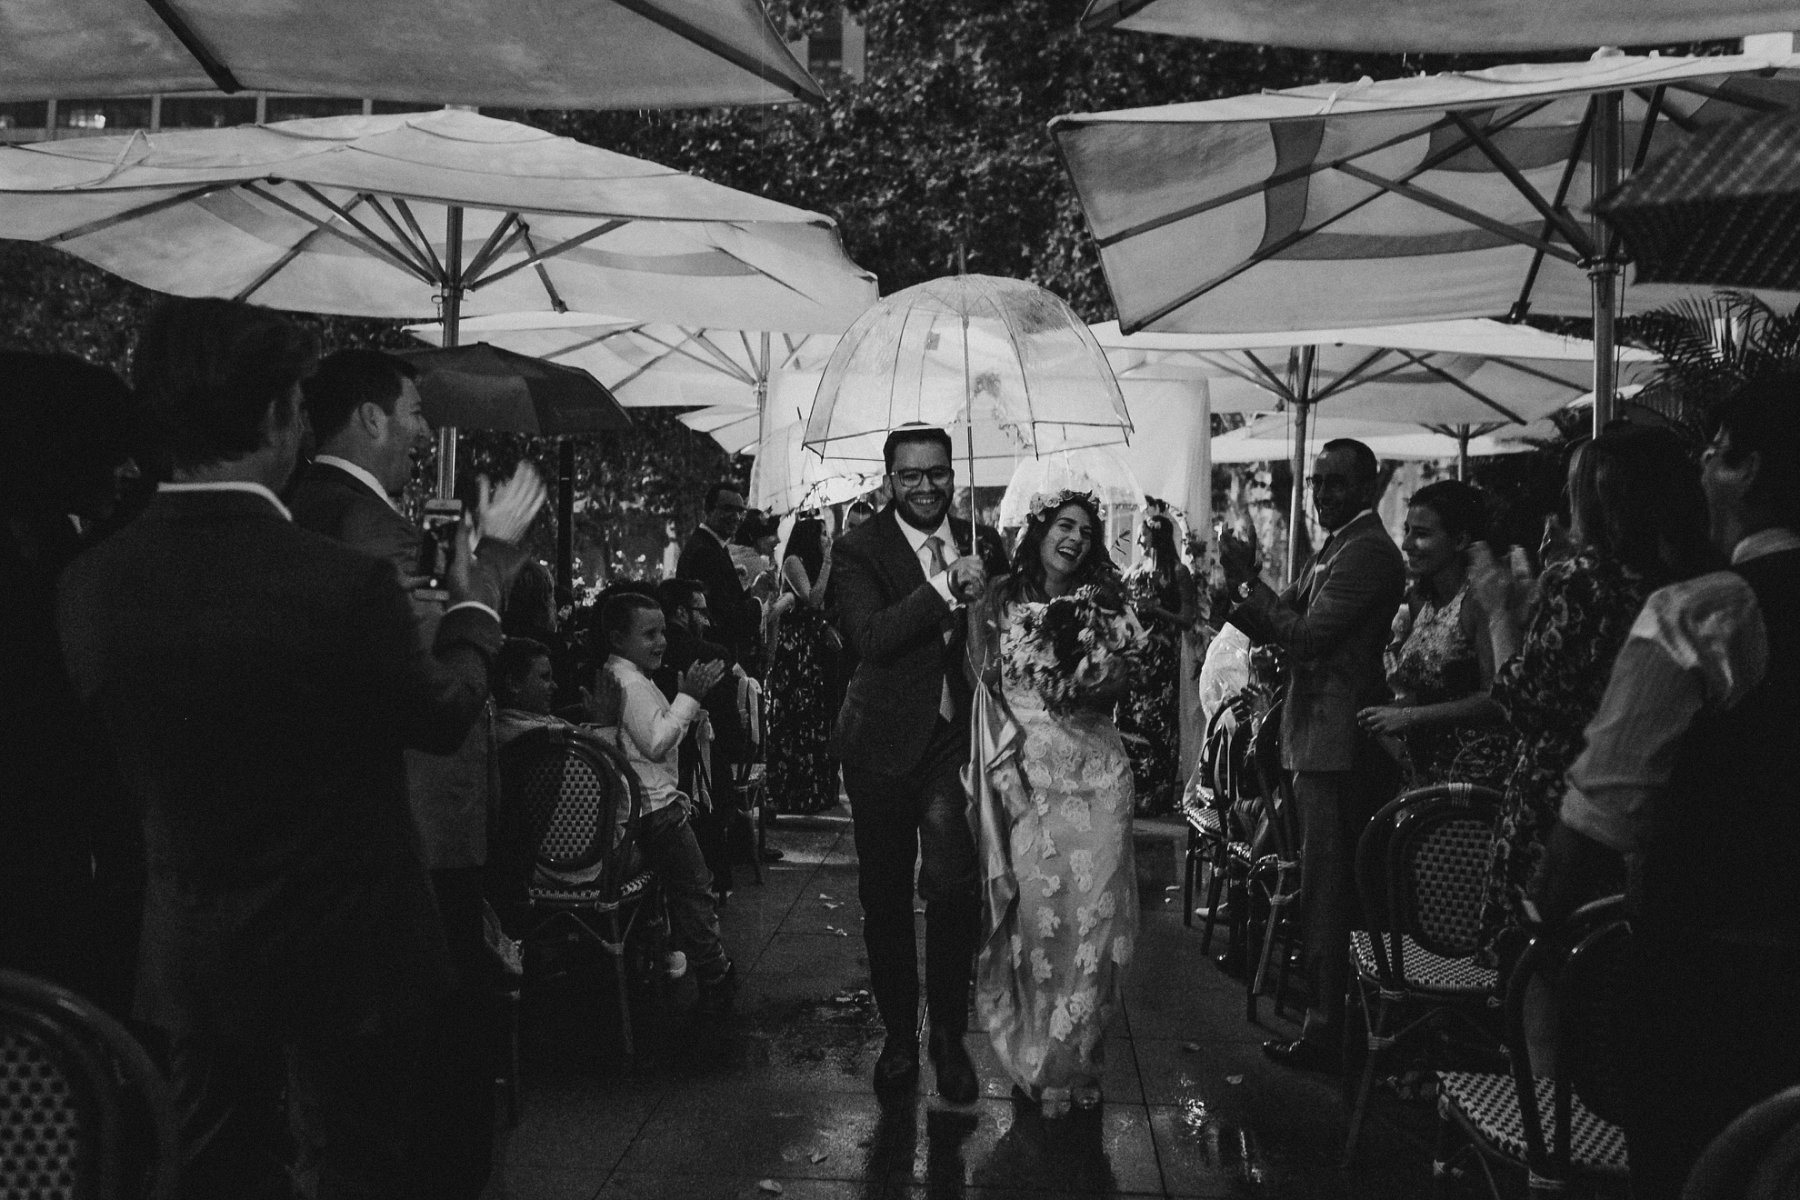 Wedding ceremony in the rain at night at Bryant Park Grill